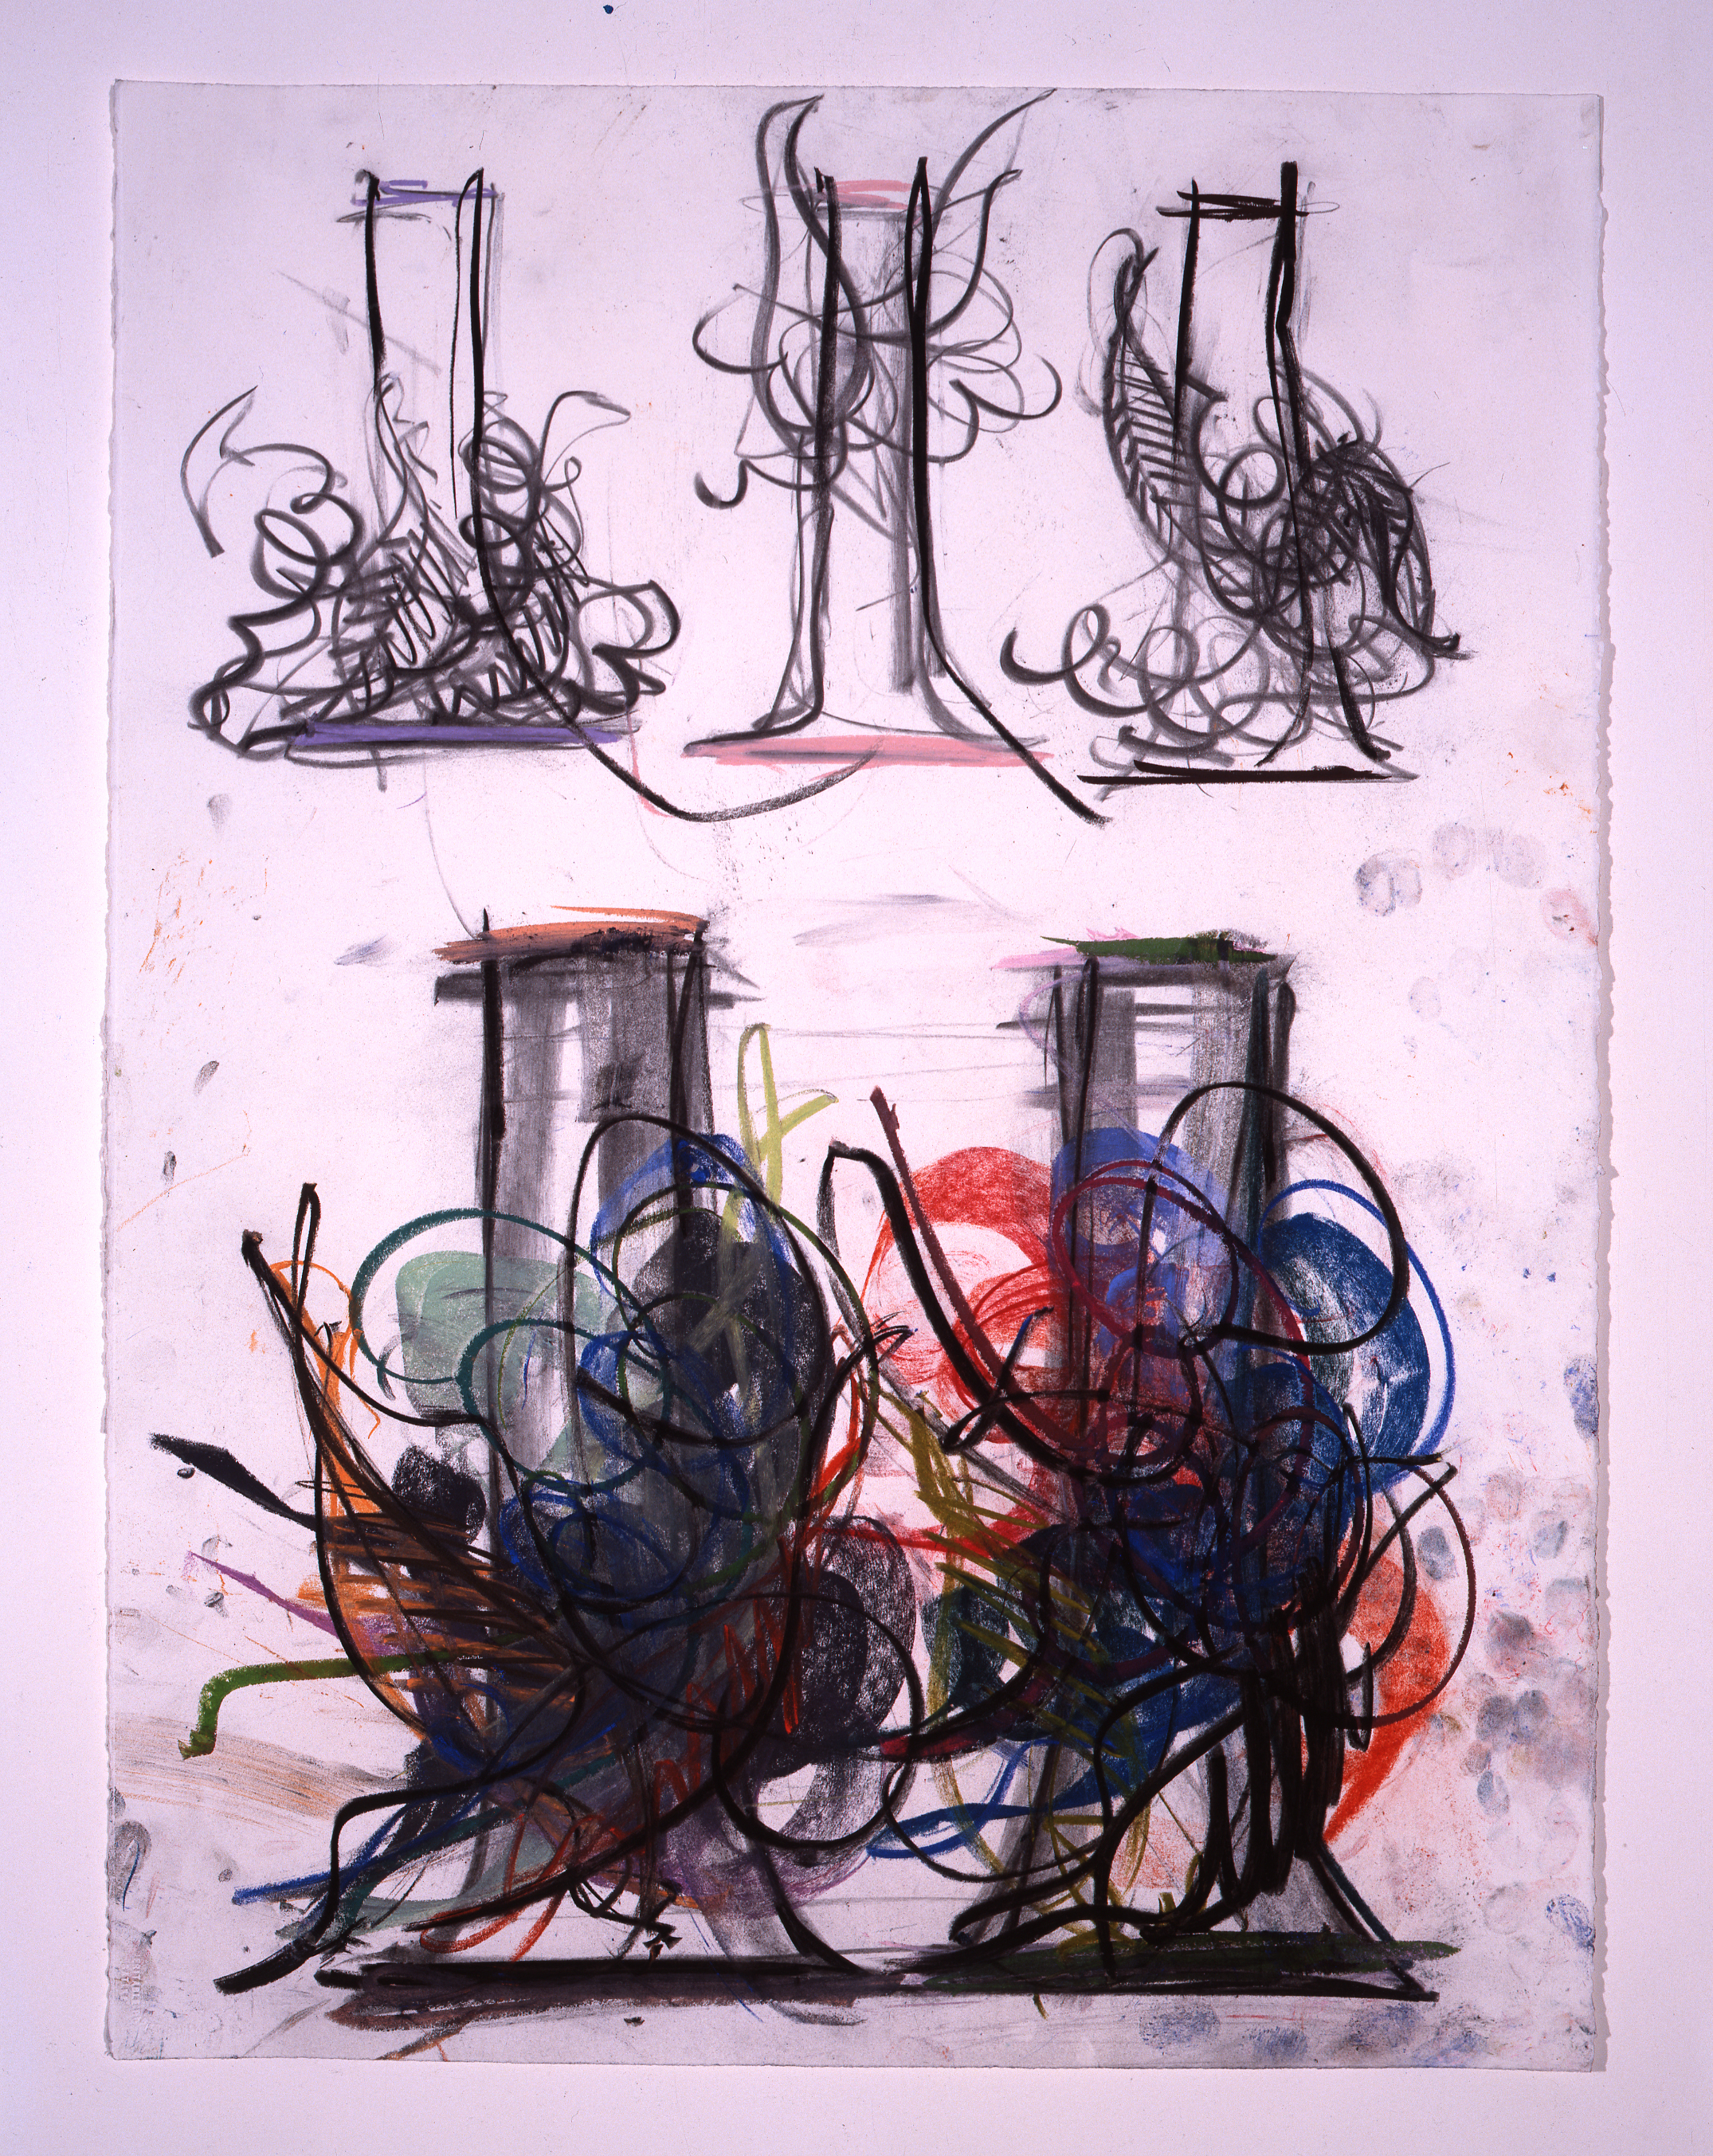 Dale Chihuly, Venetian Drawing, (1990, pastel and charcoal on paper, 30 x 22 inches), DC.387